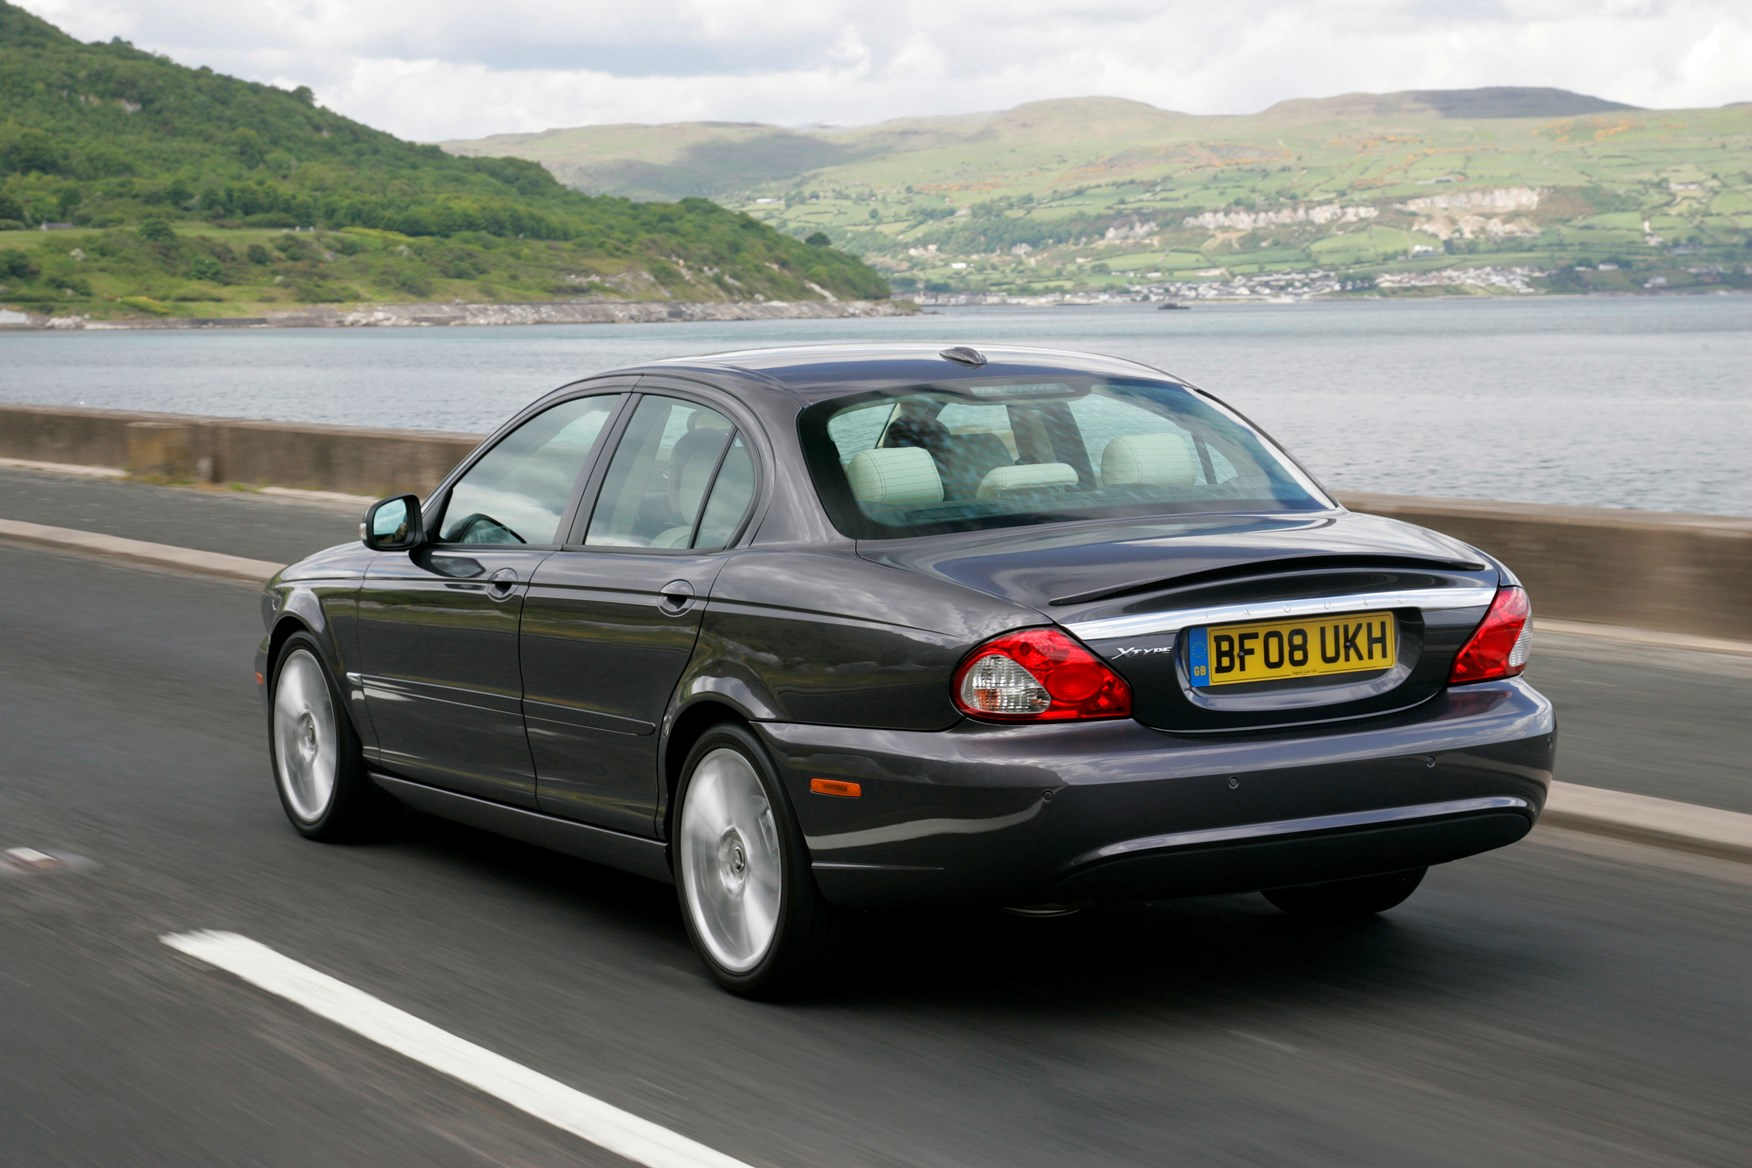 Jaguar X Type Saloon 2001 2010 Driving Performance Parkers 2004 4 2 Engine Diagram View All Images Of The 01 10